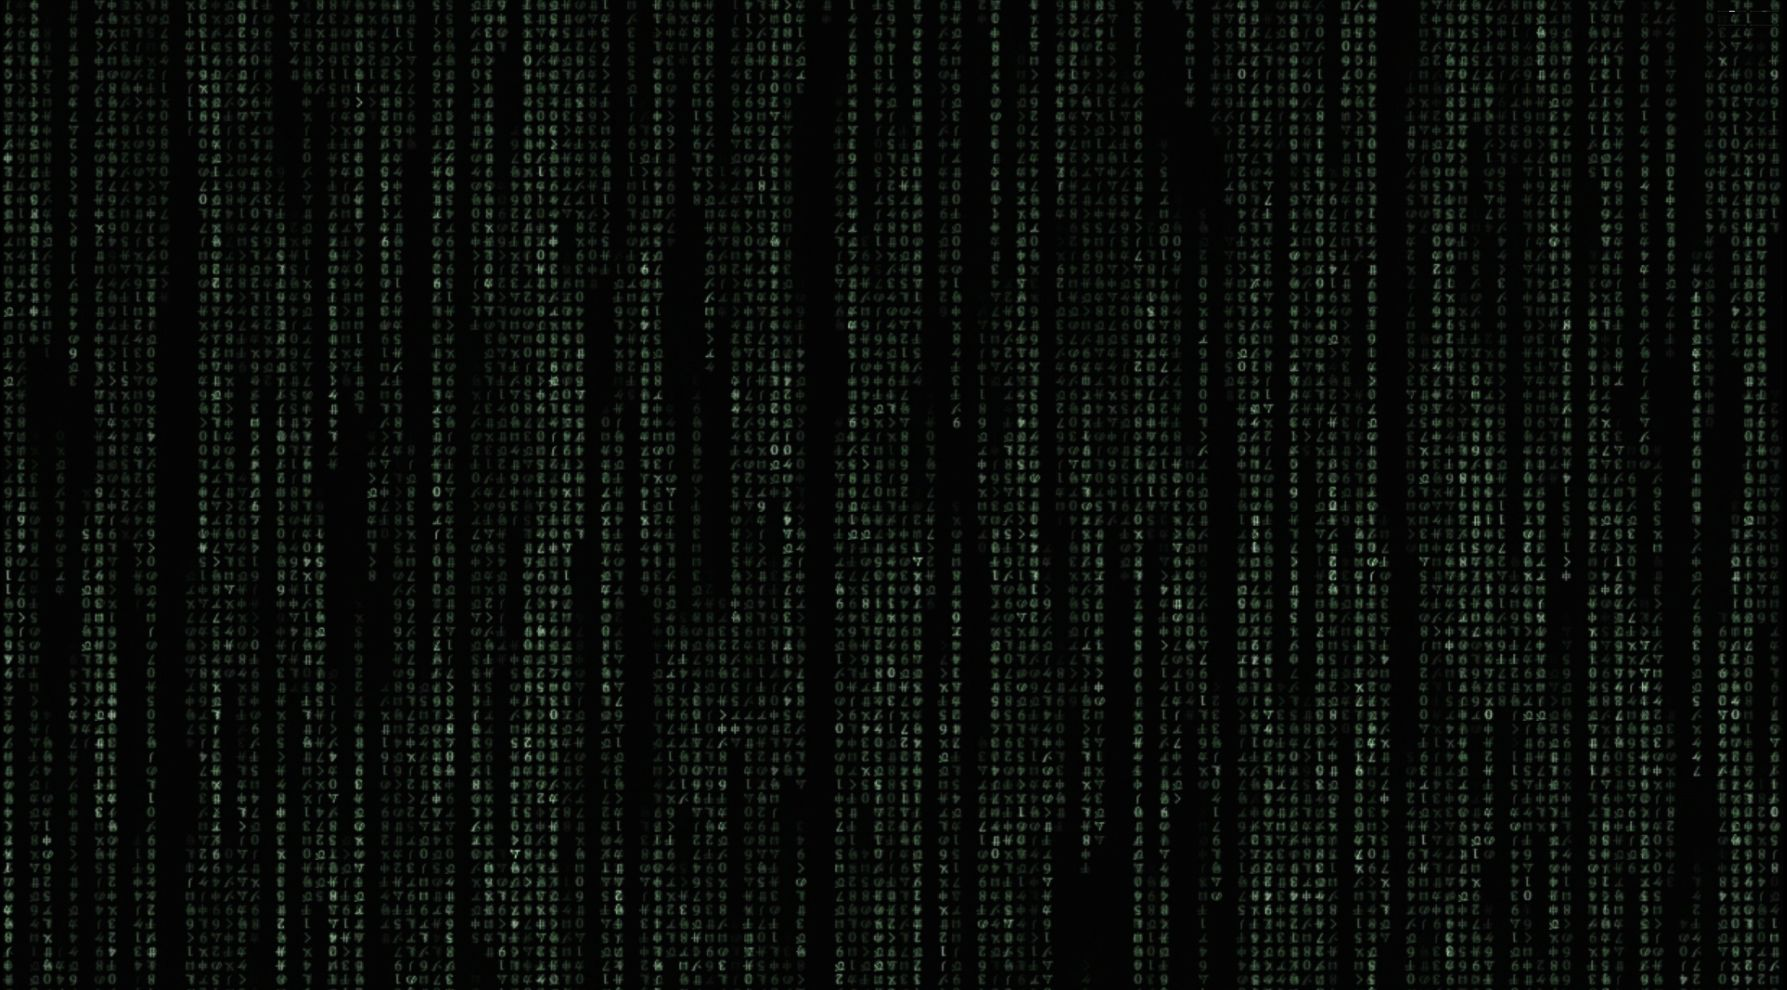 Animated Matrix Code AKA Dream scene Video and DL link in comments 1787x990